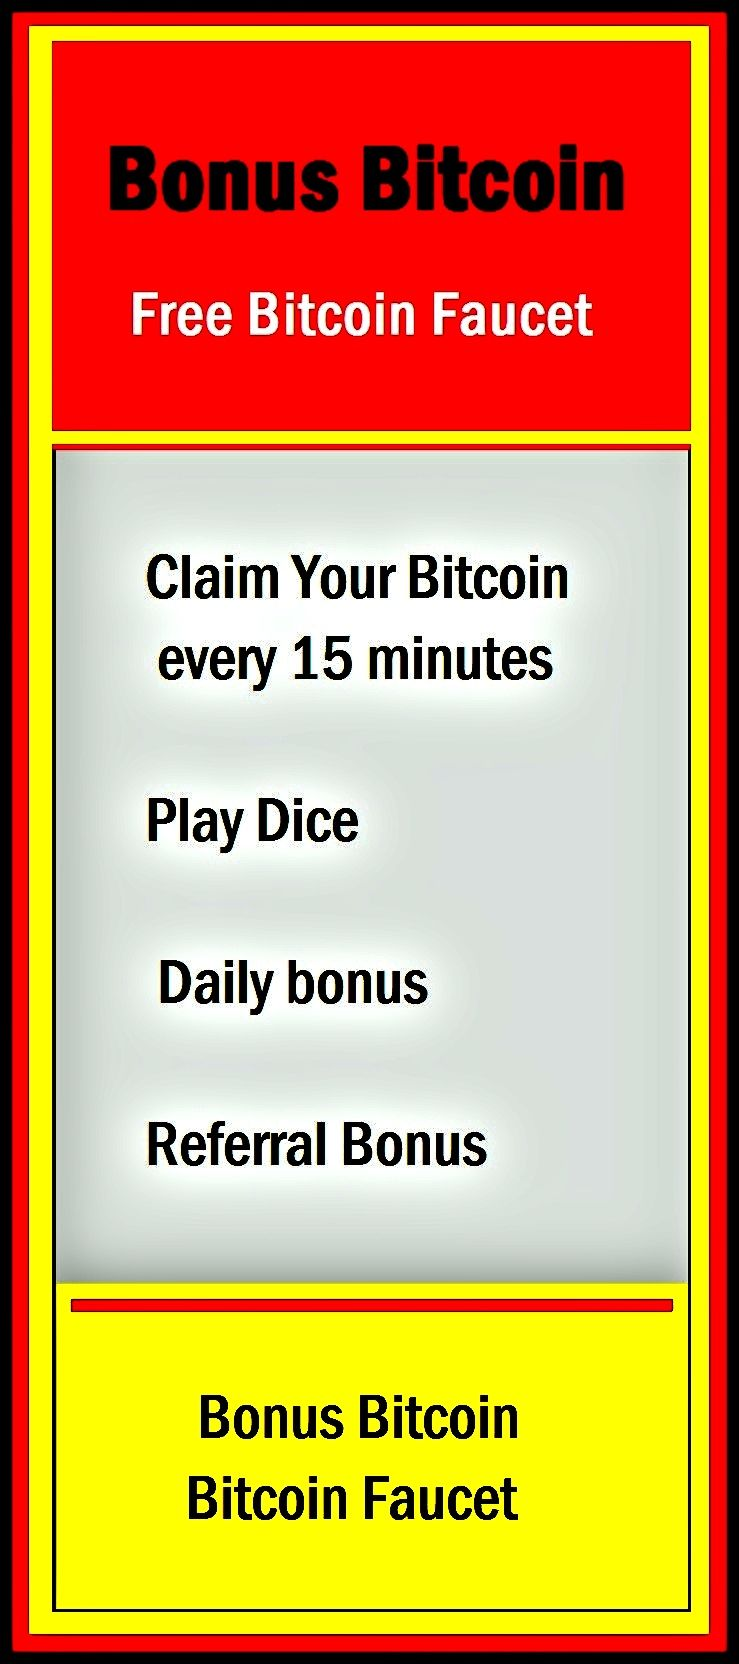 Bonusbitcoin ,Faucet,internet currency,make money, cryptocurrencies ...